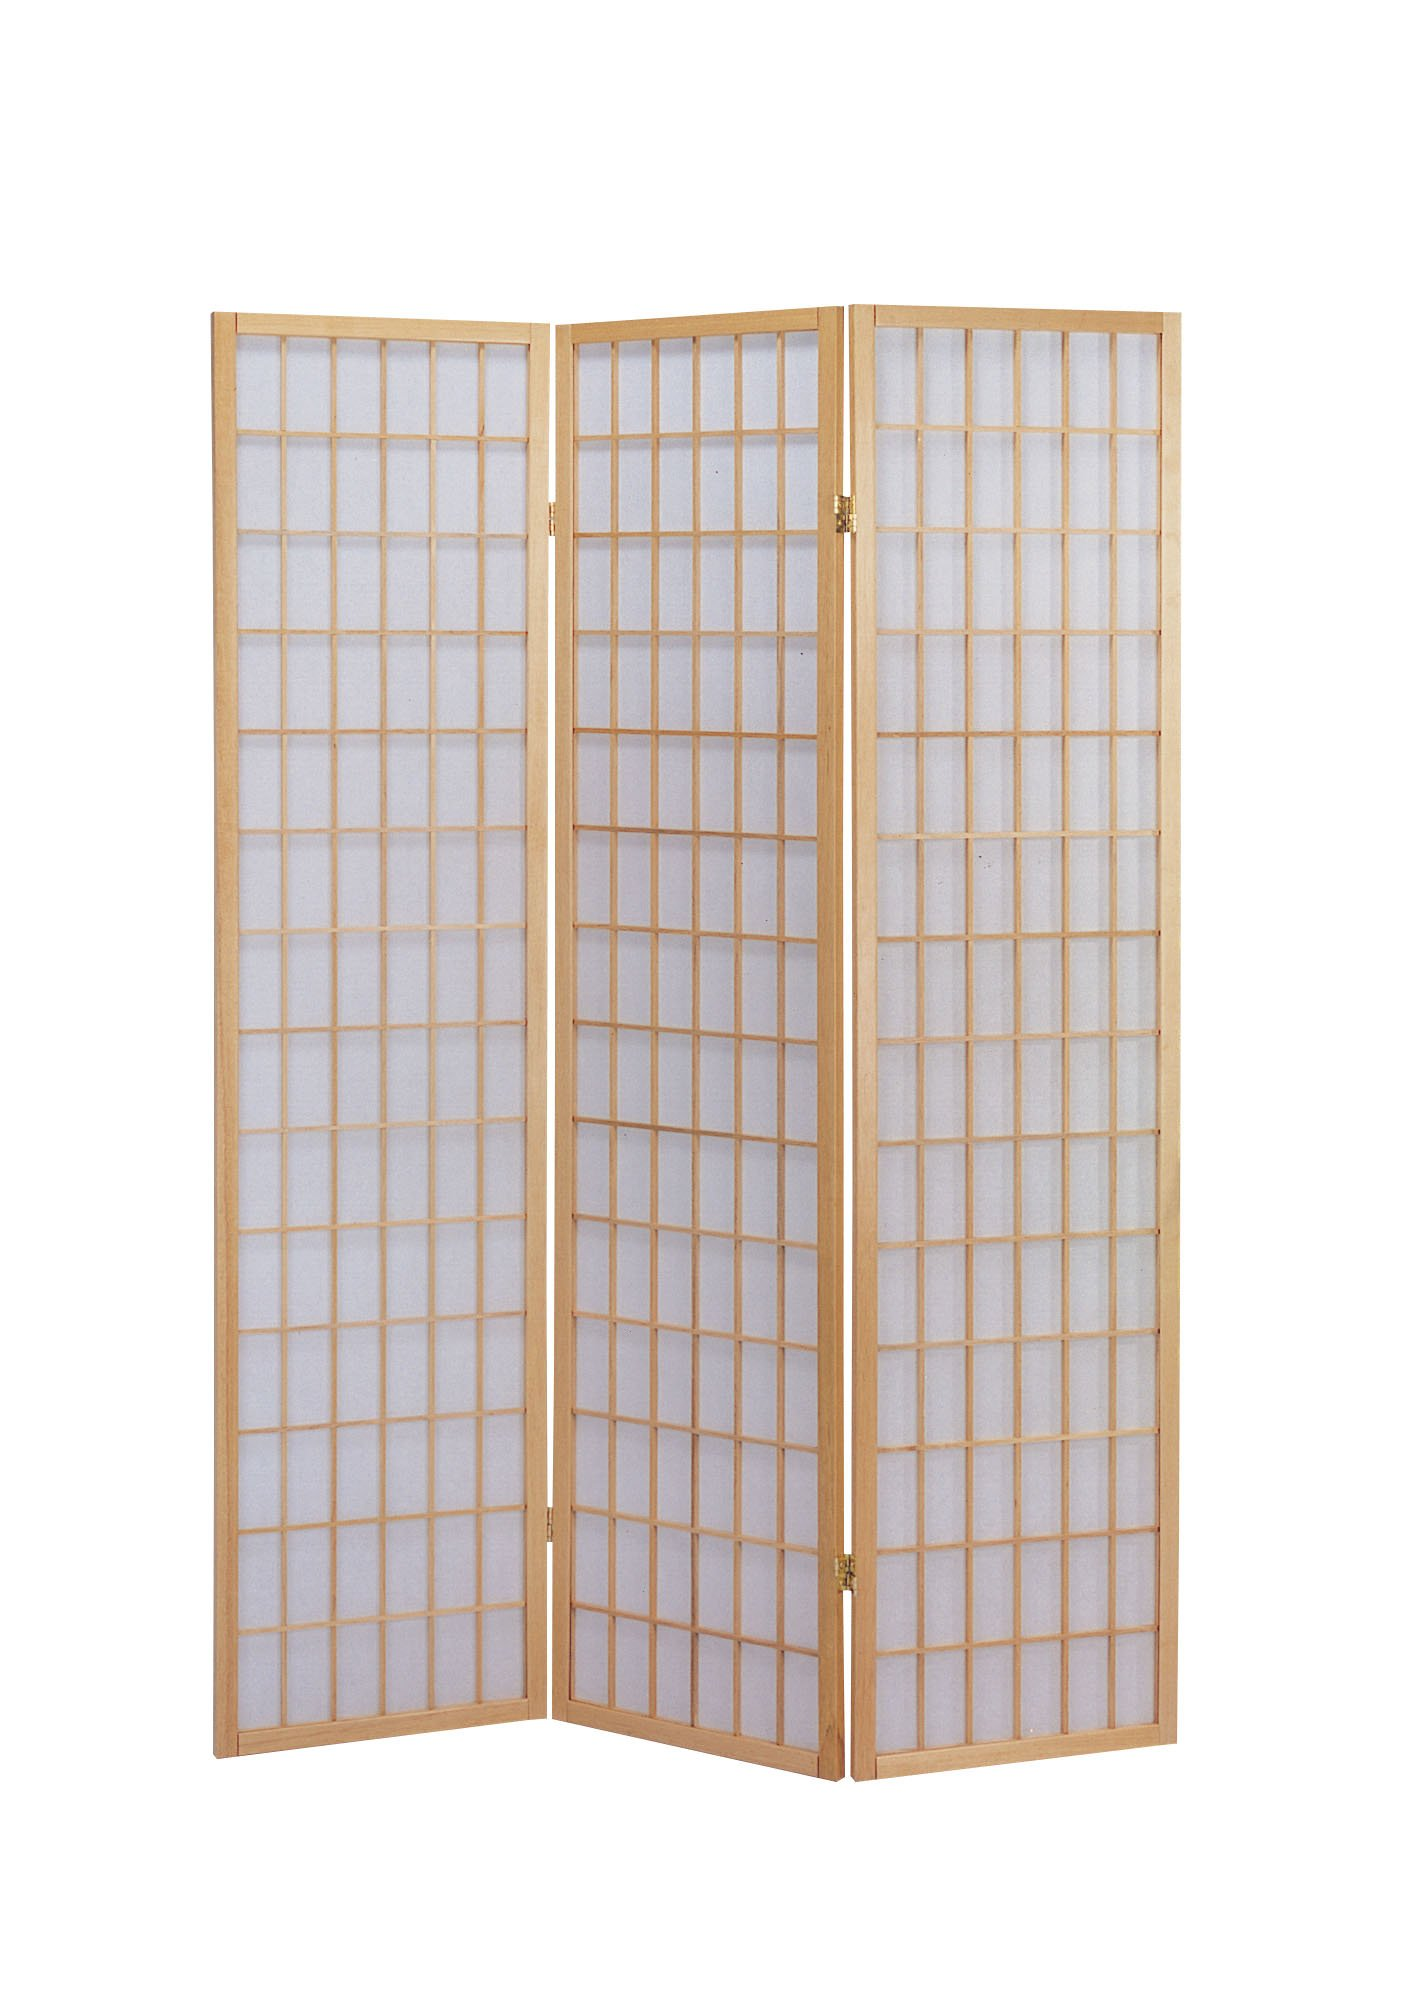 ACME 02285 Naomi 3-Panel Wooden Screen, Natural Finish by ACME